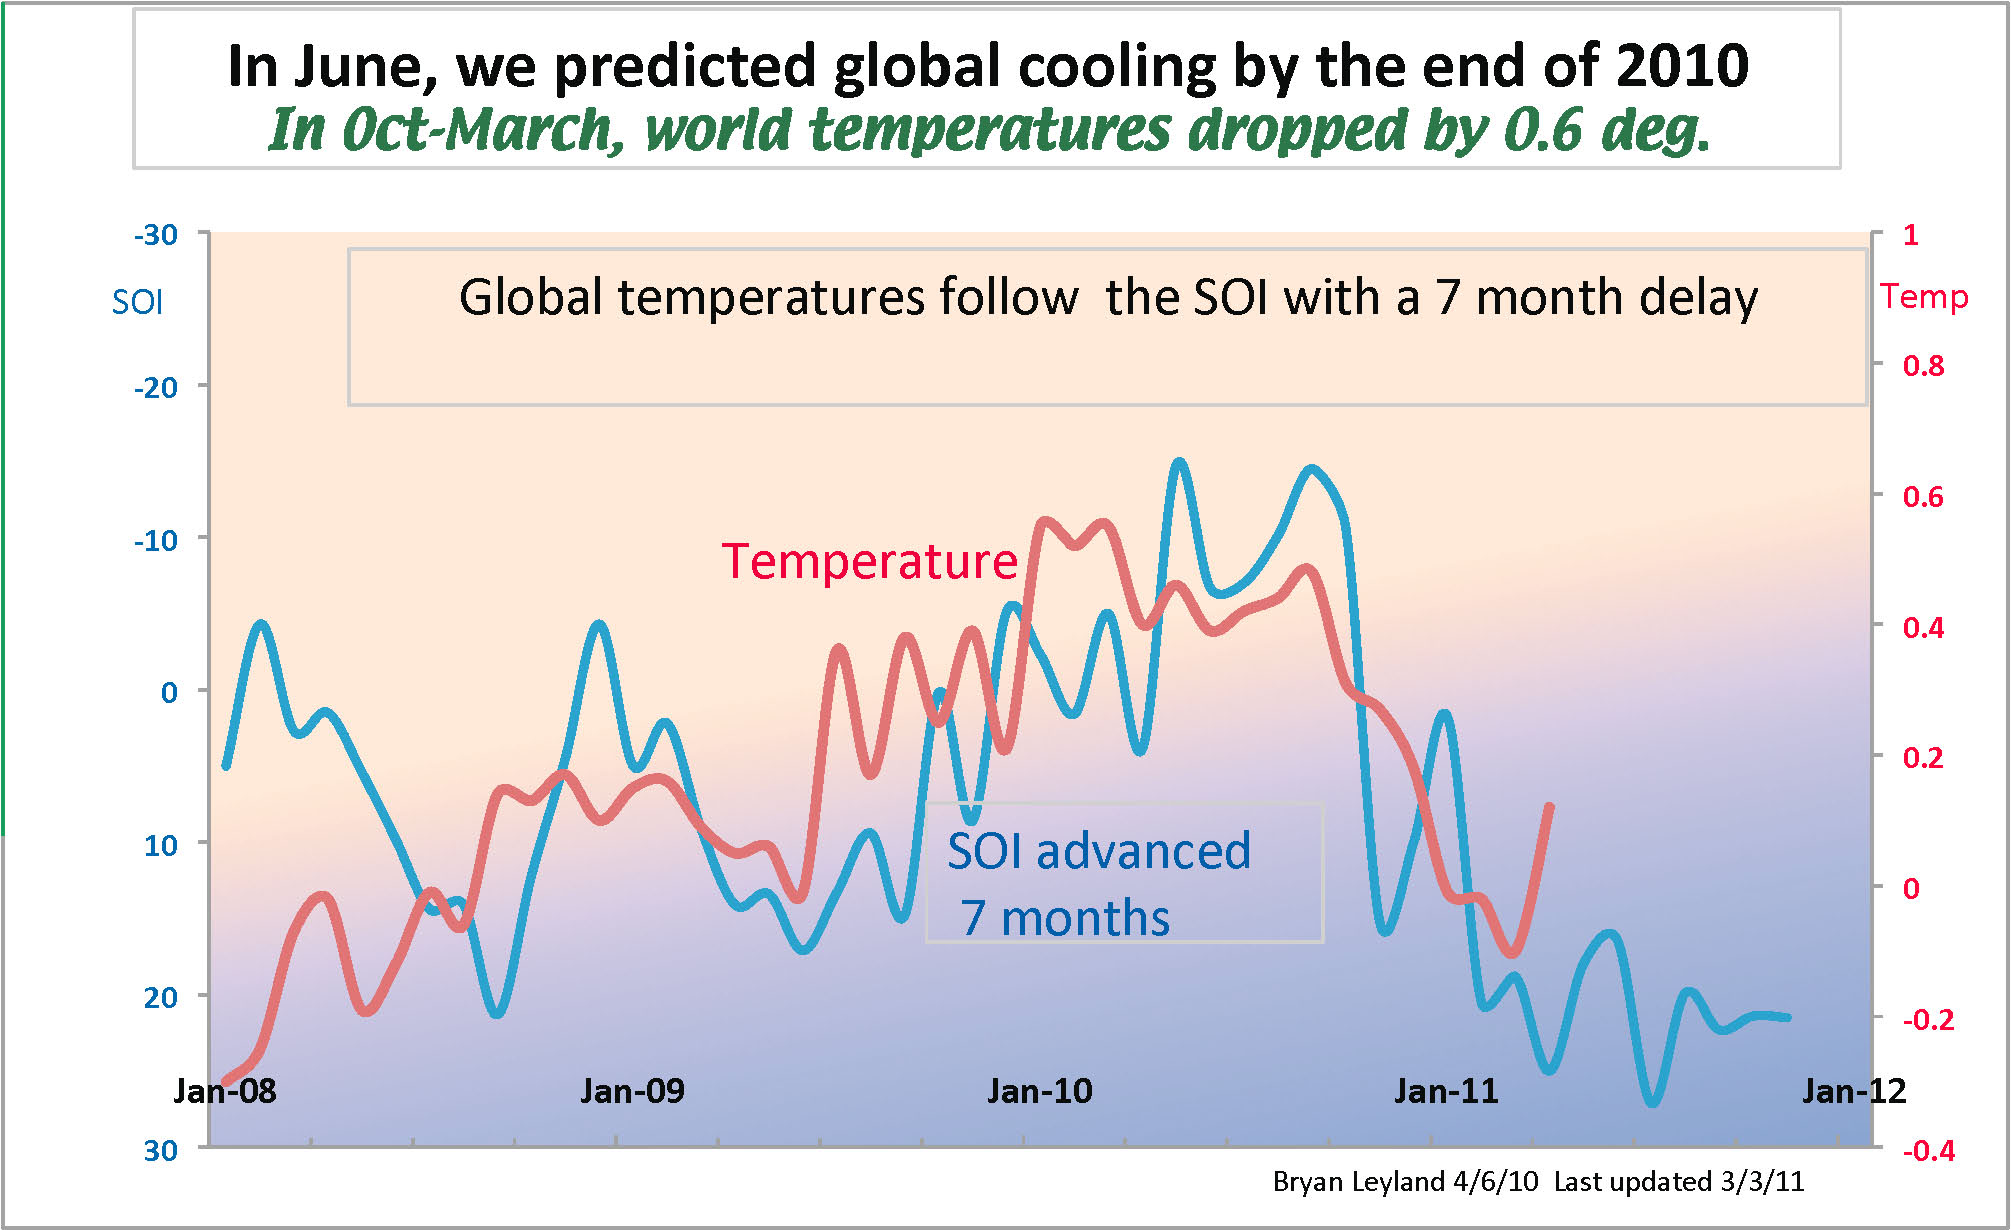 Leyland global temp prediction